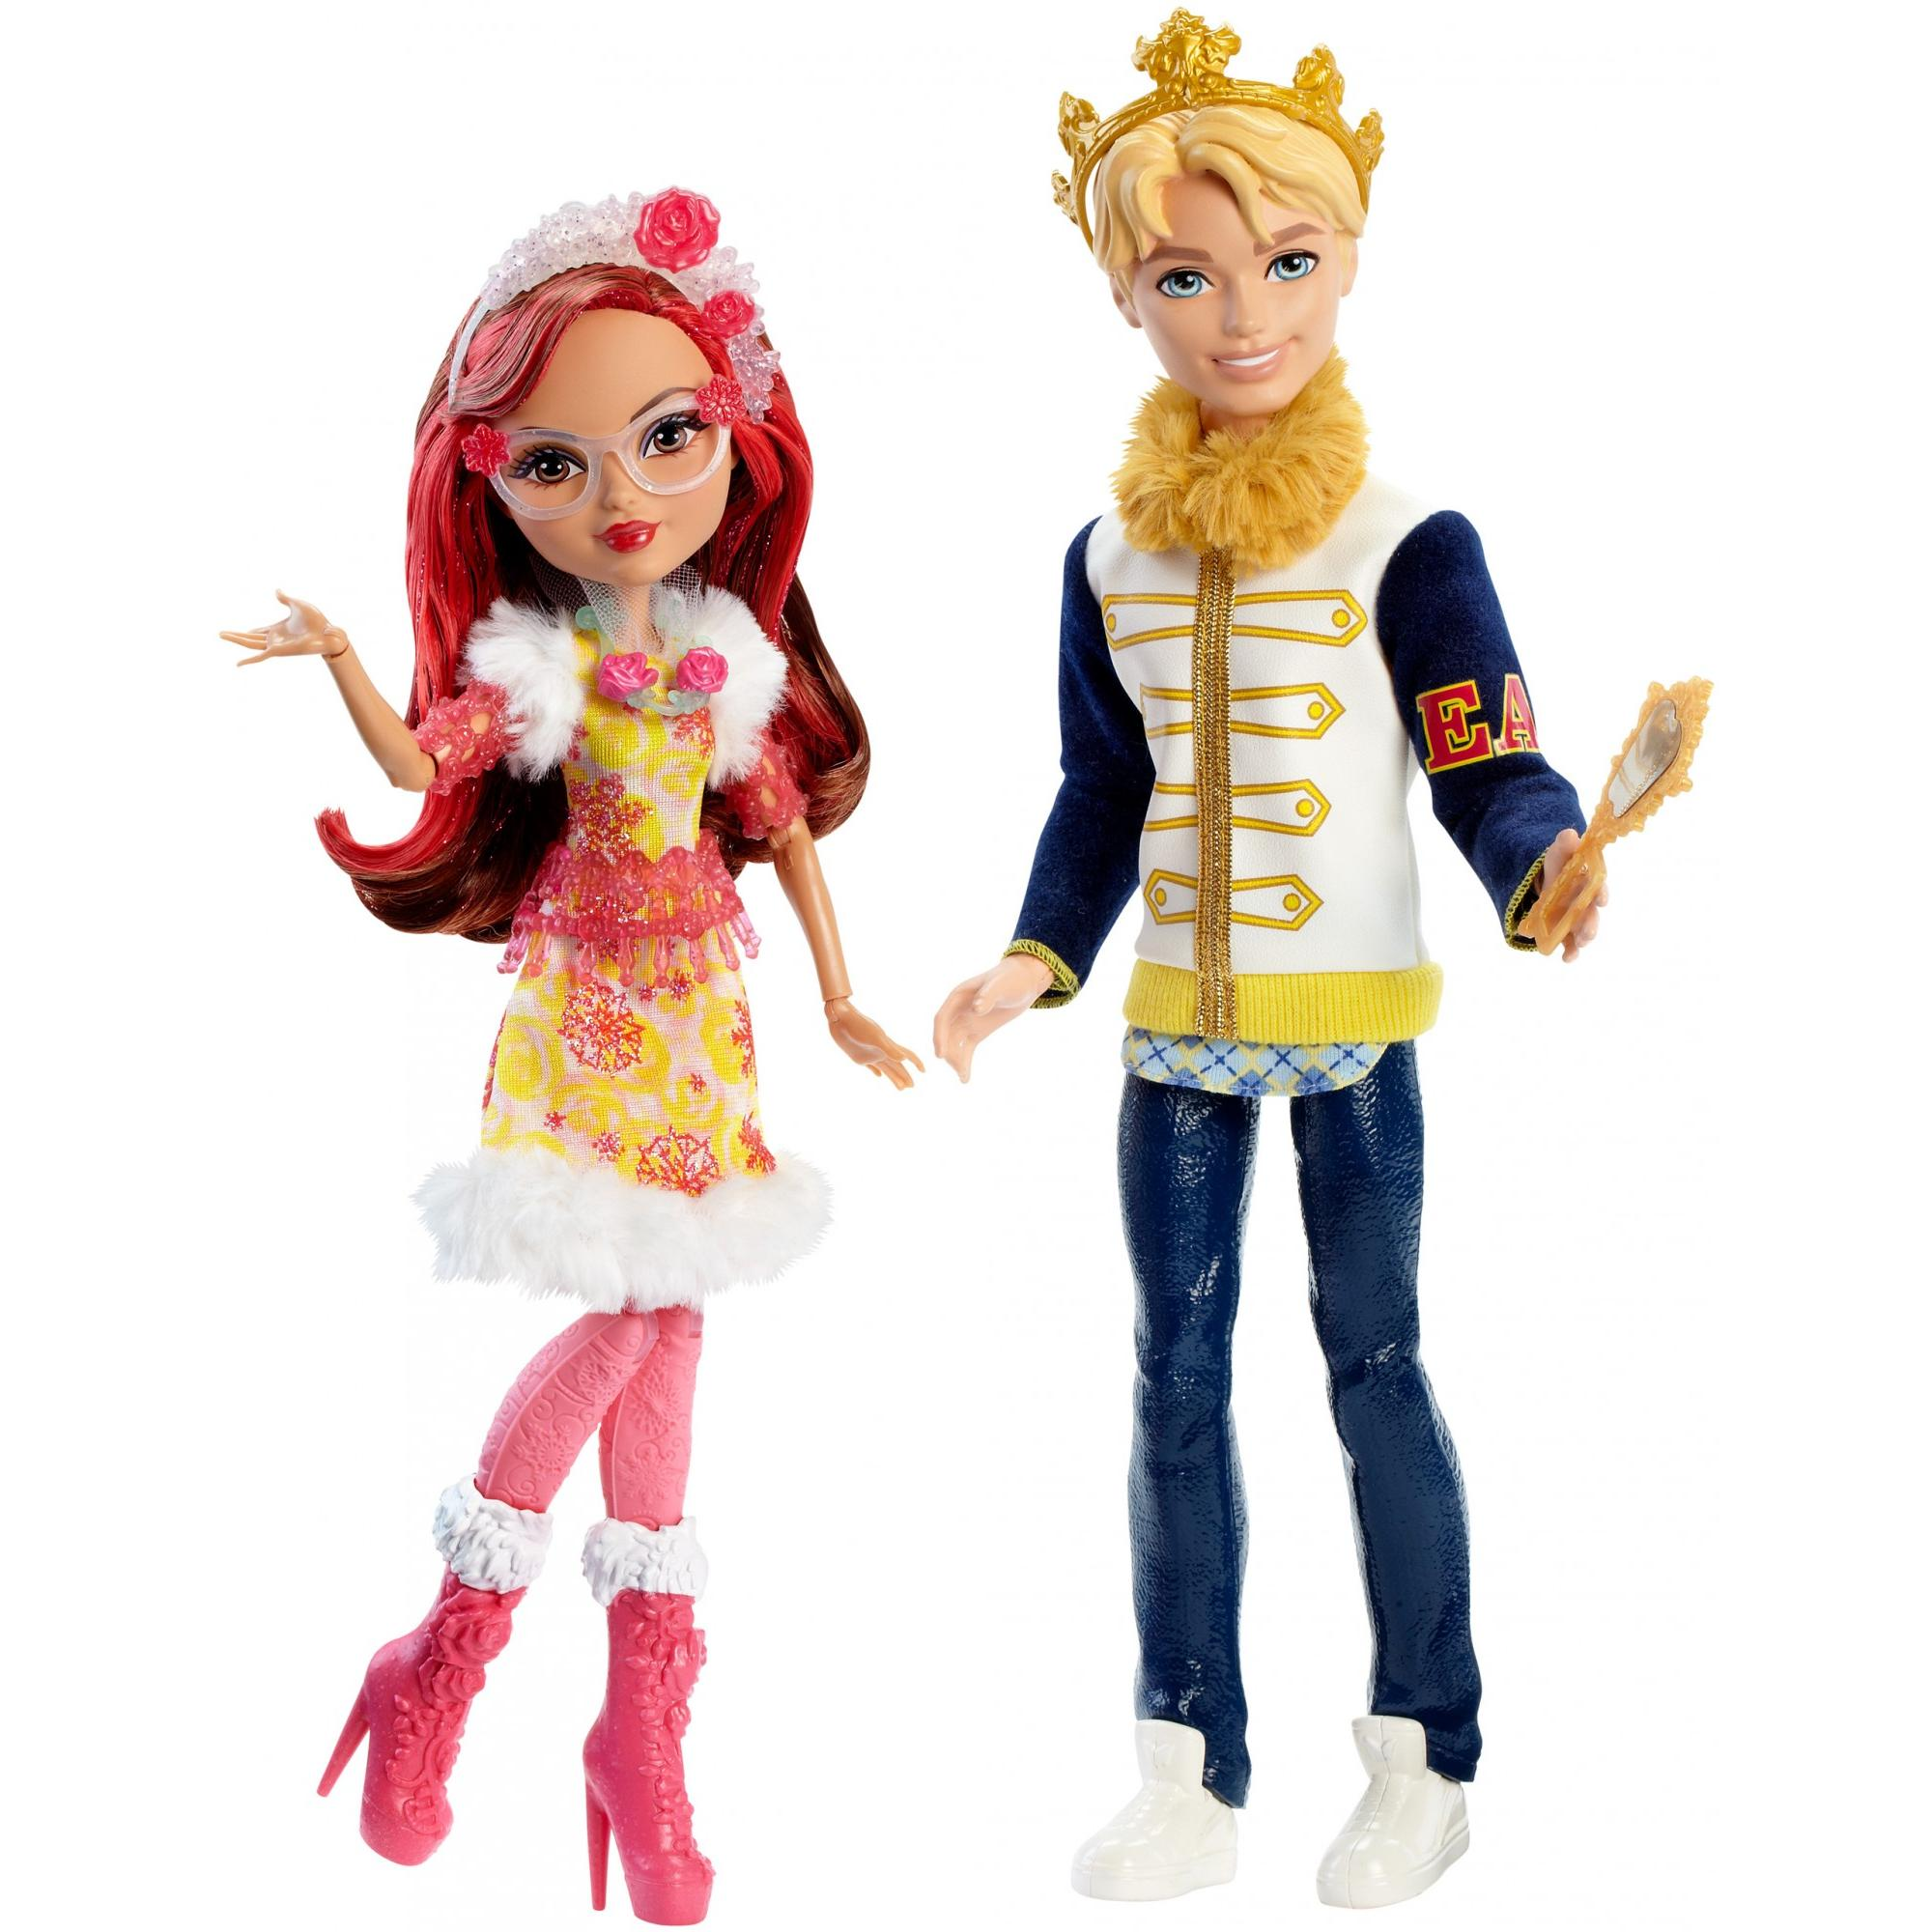 EVER AFTER HIGH EPIC WINTER ENTERTAINMENT 2 PK